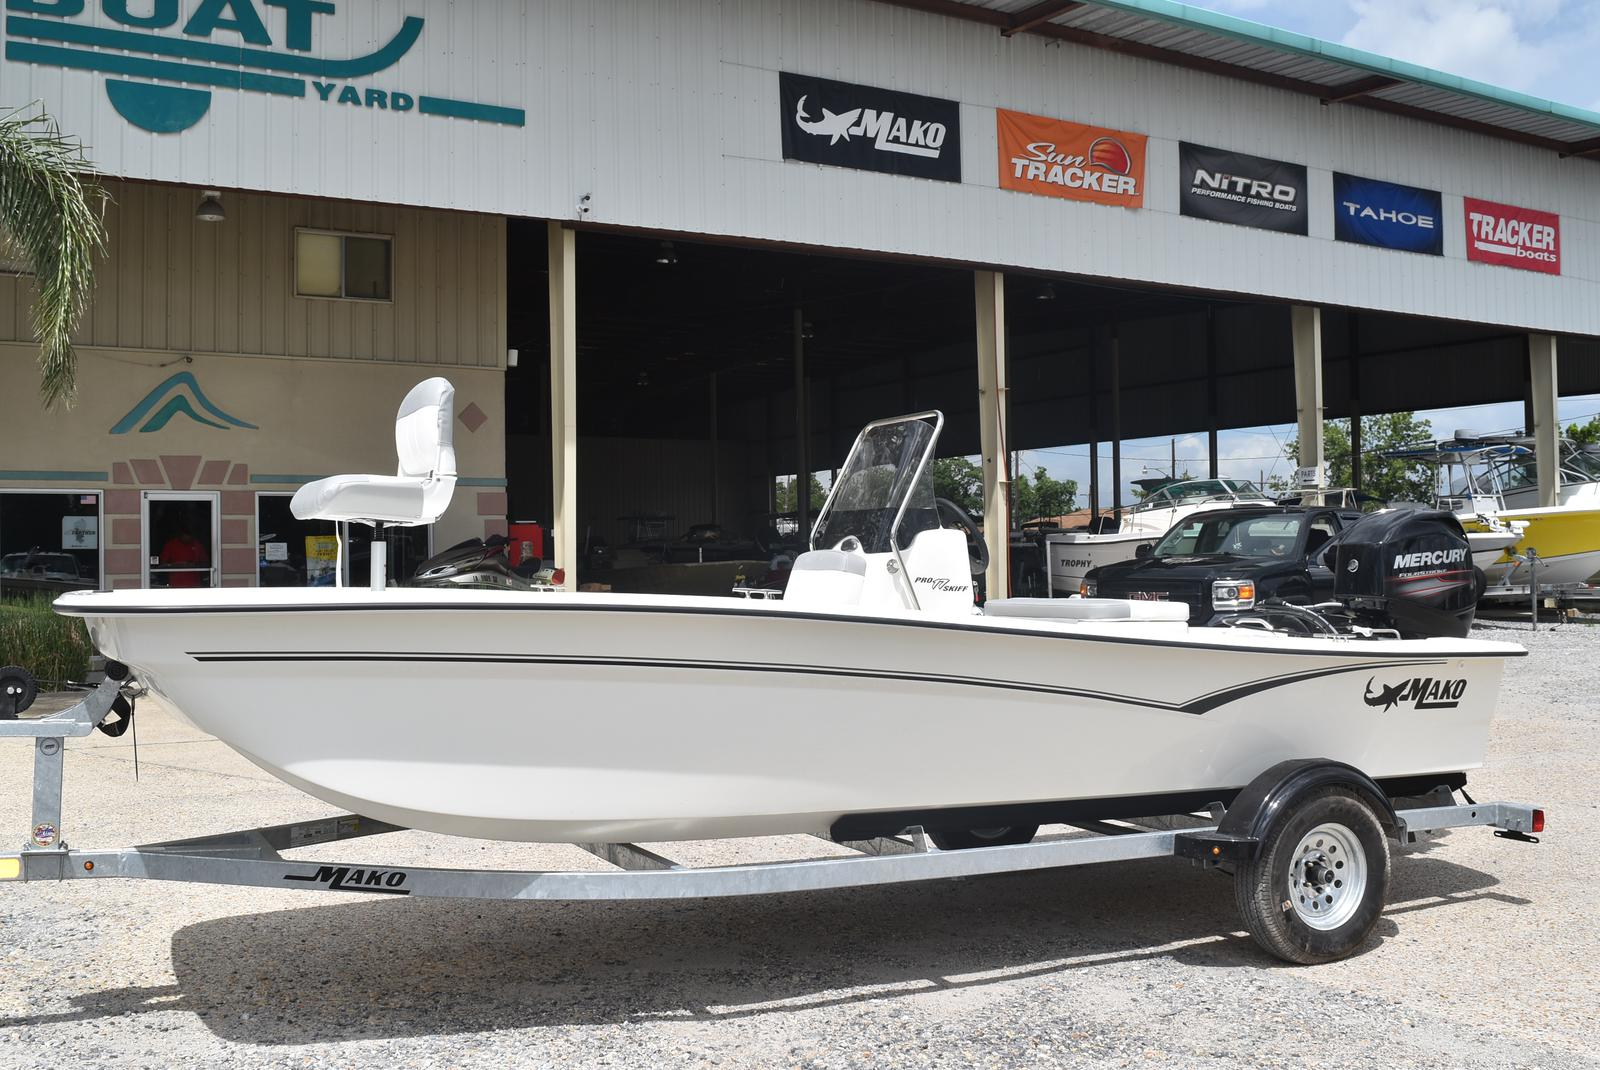 2020 Mako boat for sale, model of the boat is Pro Skiff 17, 75 ELPT & Image # 127 of 702